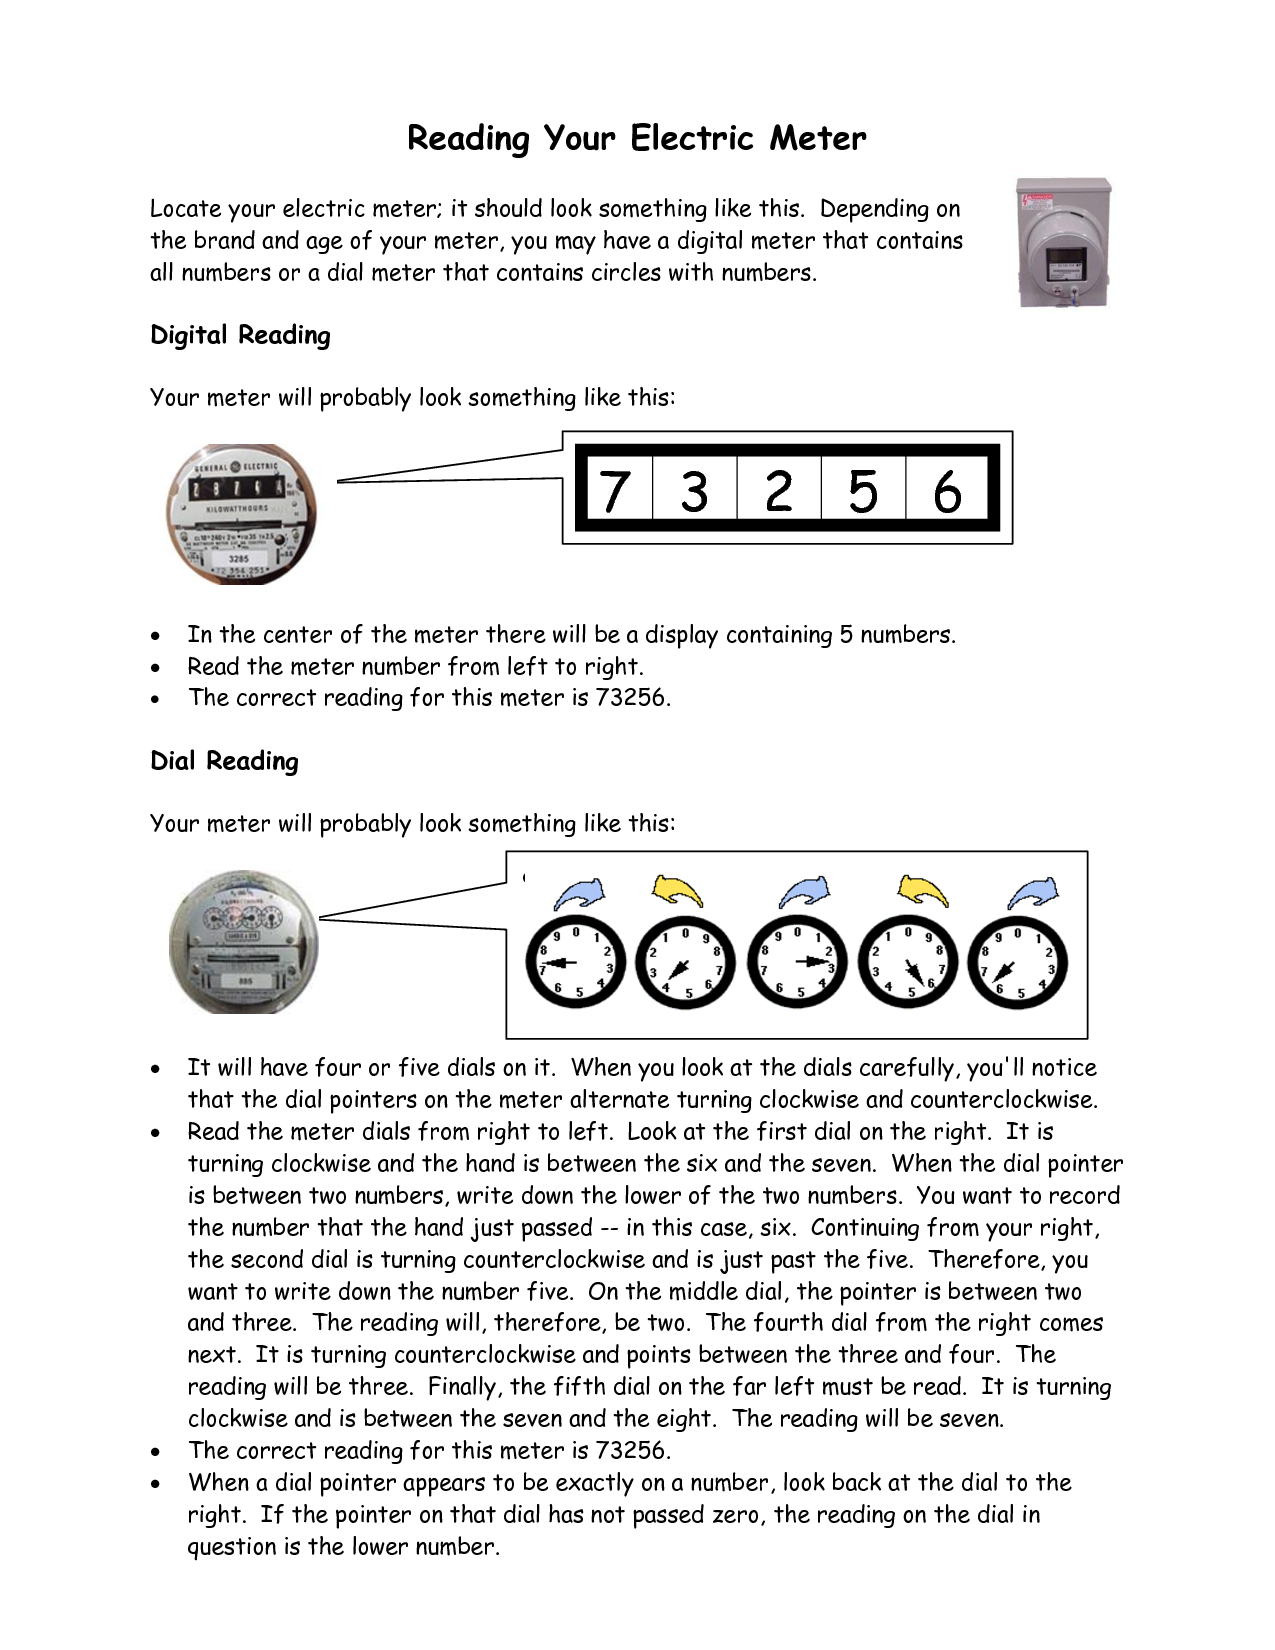 how to read a digital or dial electric meter wwwwhitefencecom